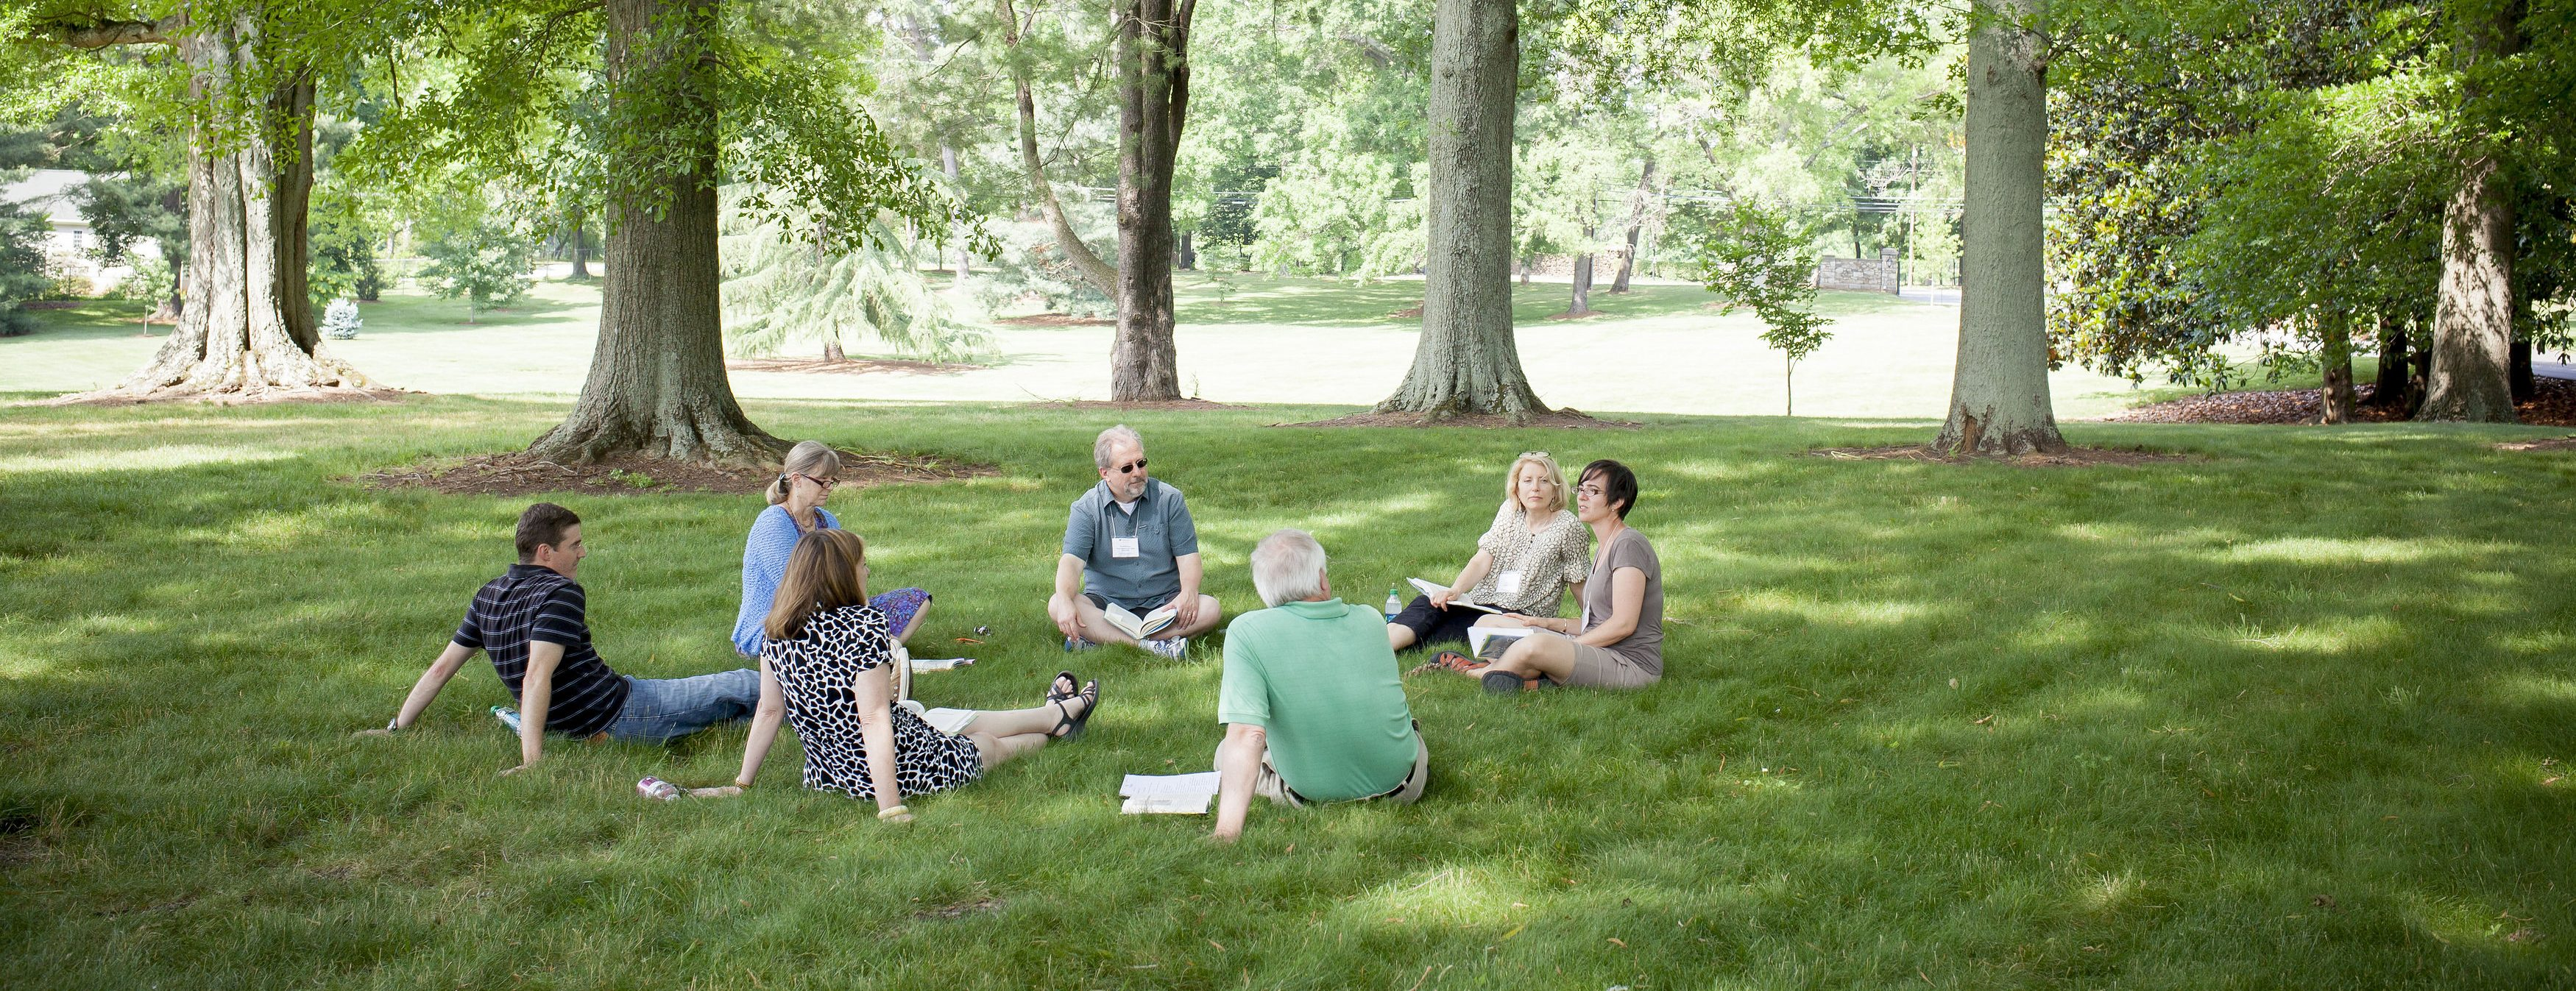 faculty outside on grass